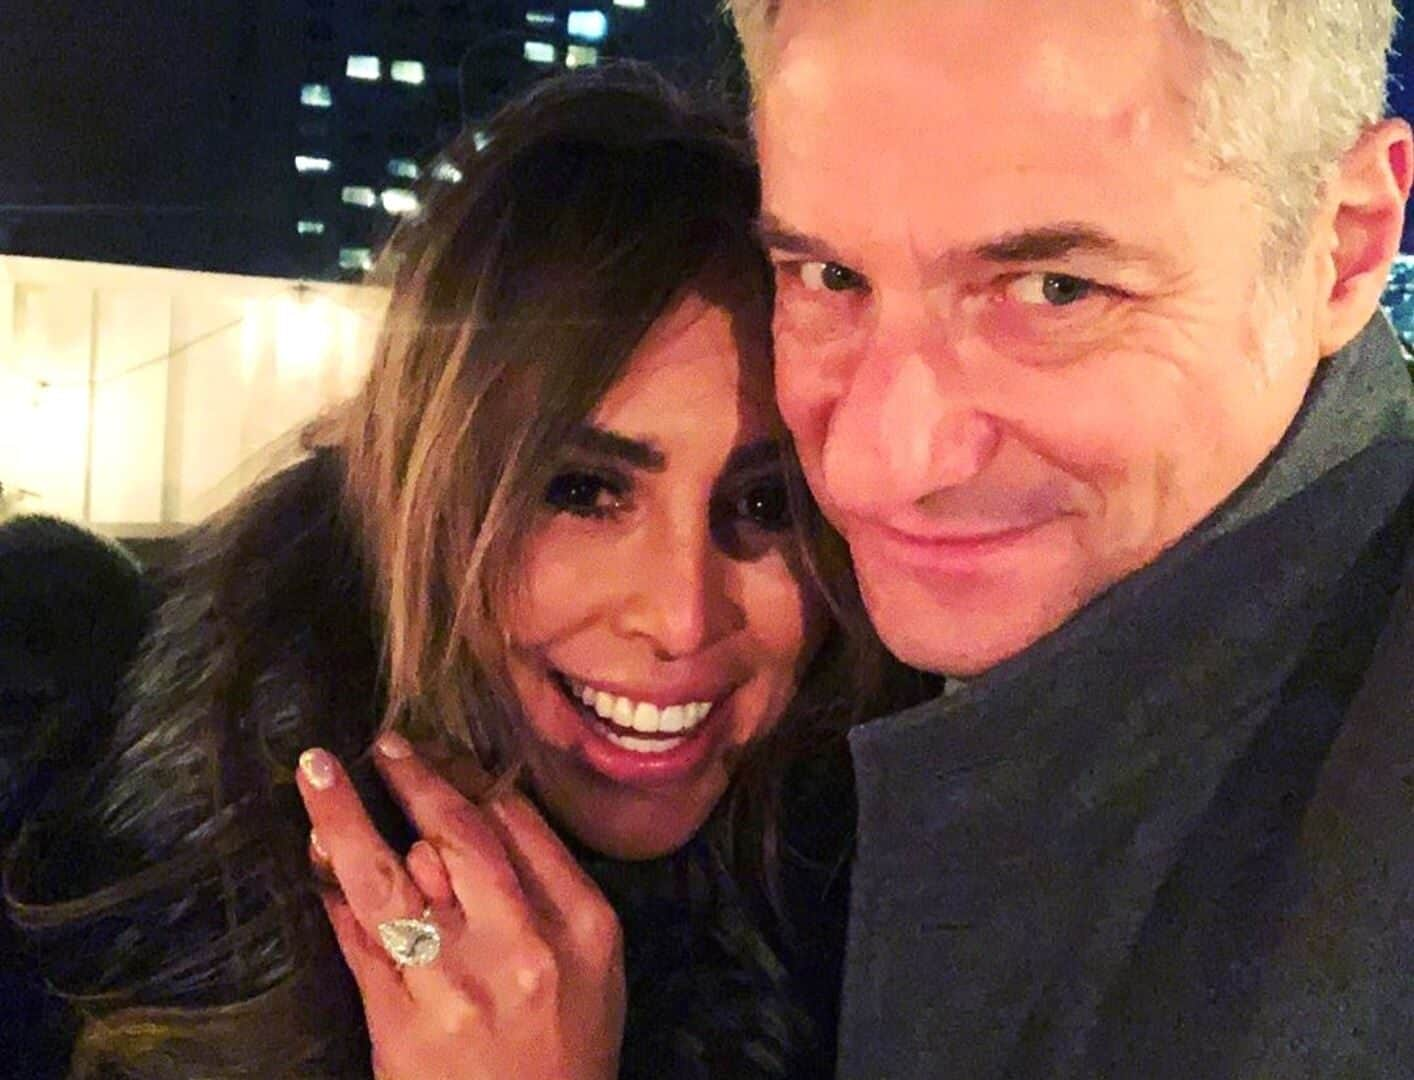 REPORT: Kelly Dodd Has Put Wedding Plans on Hold Due to the Pandemic, How Does the RHOC Star Feel?